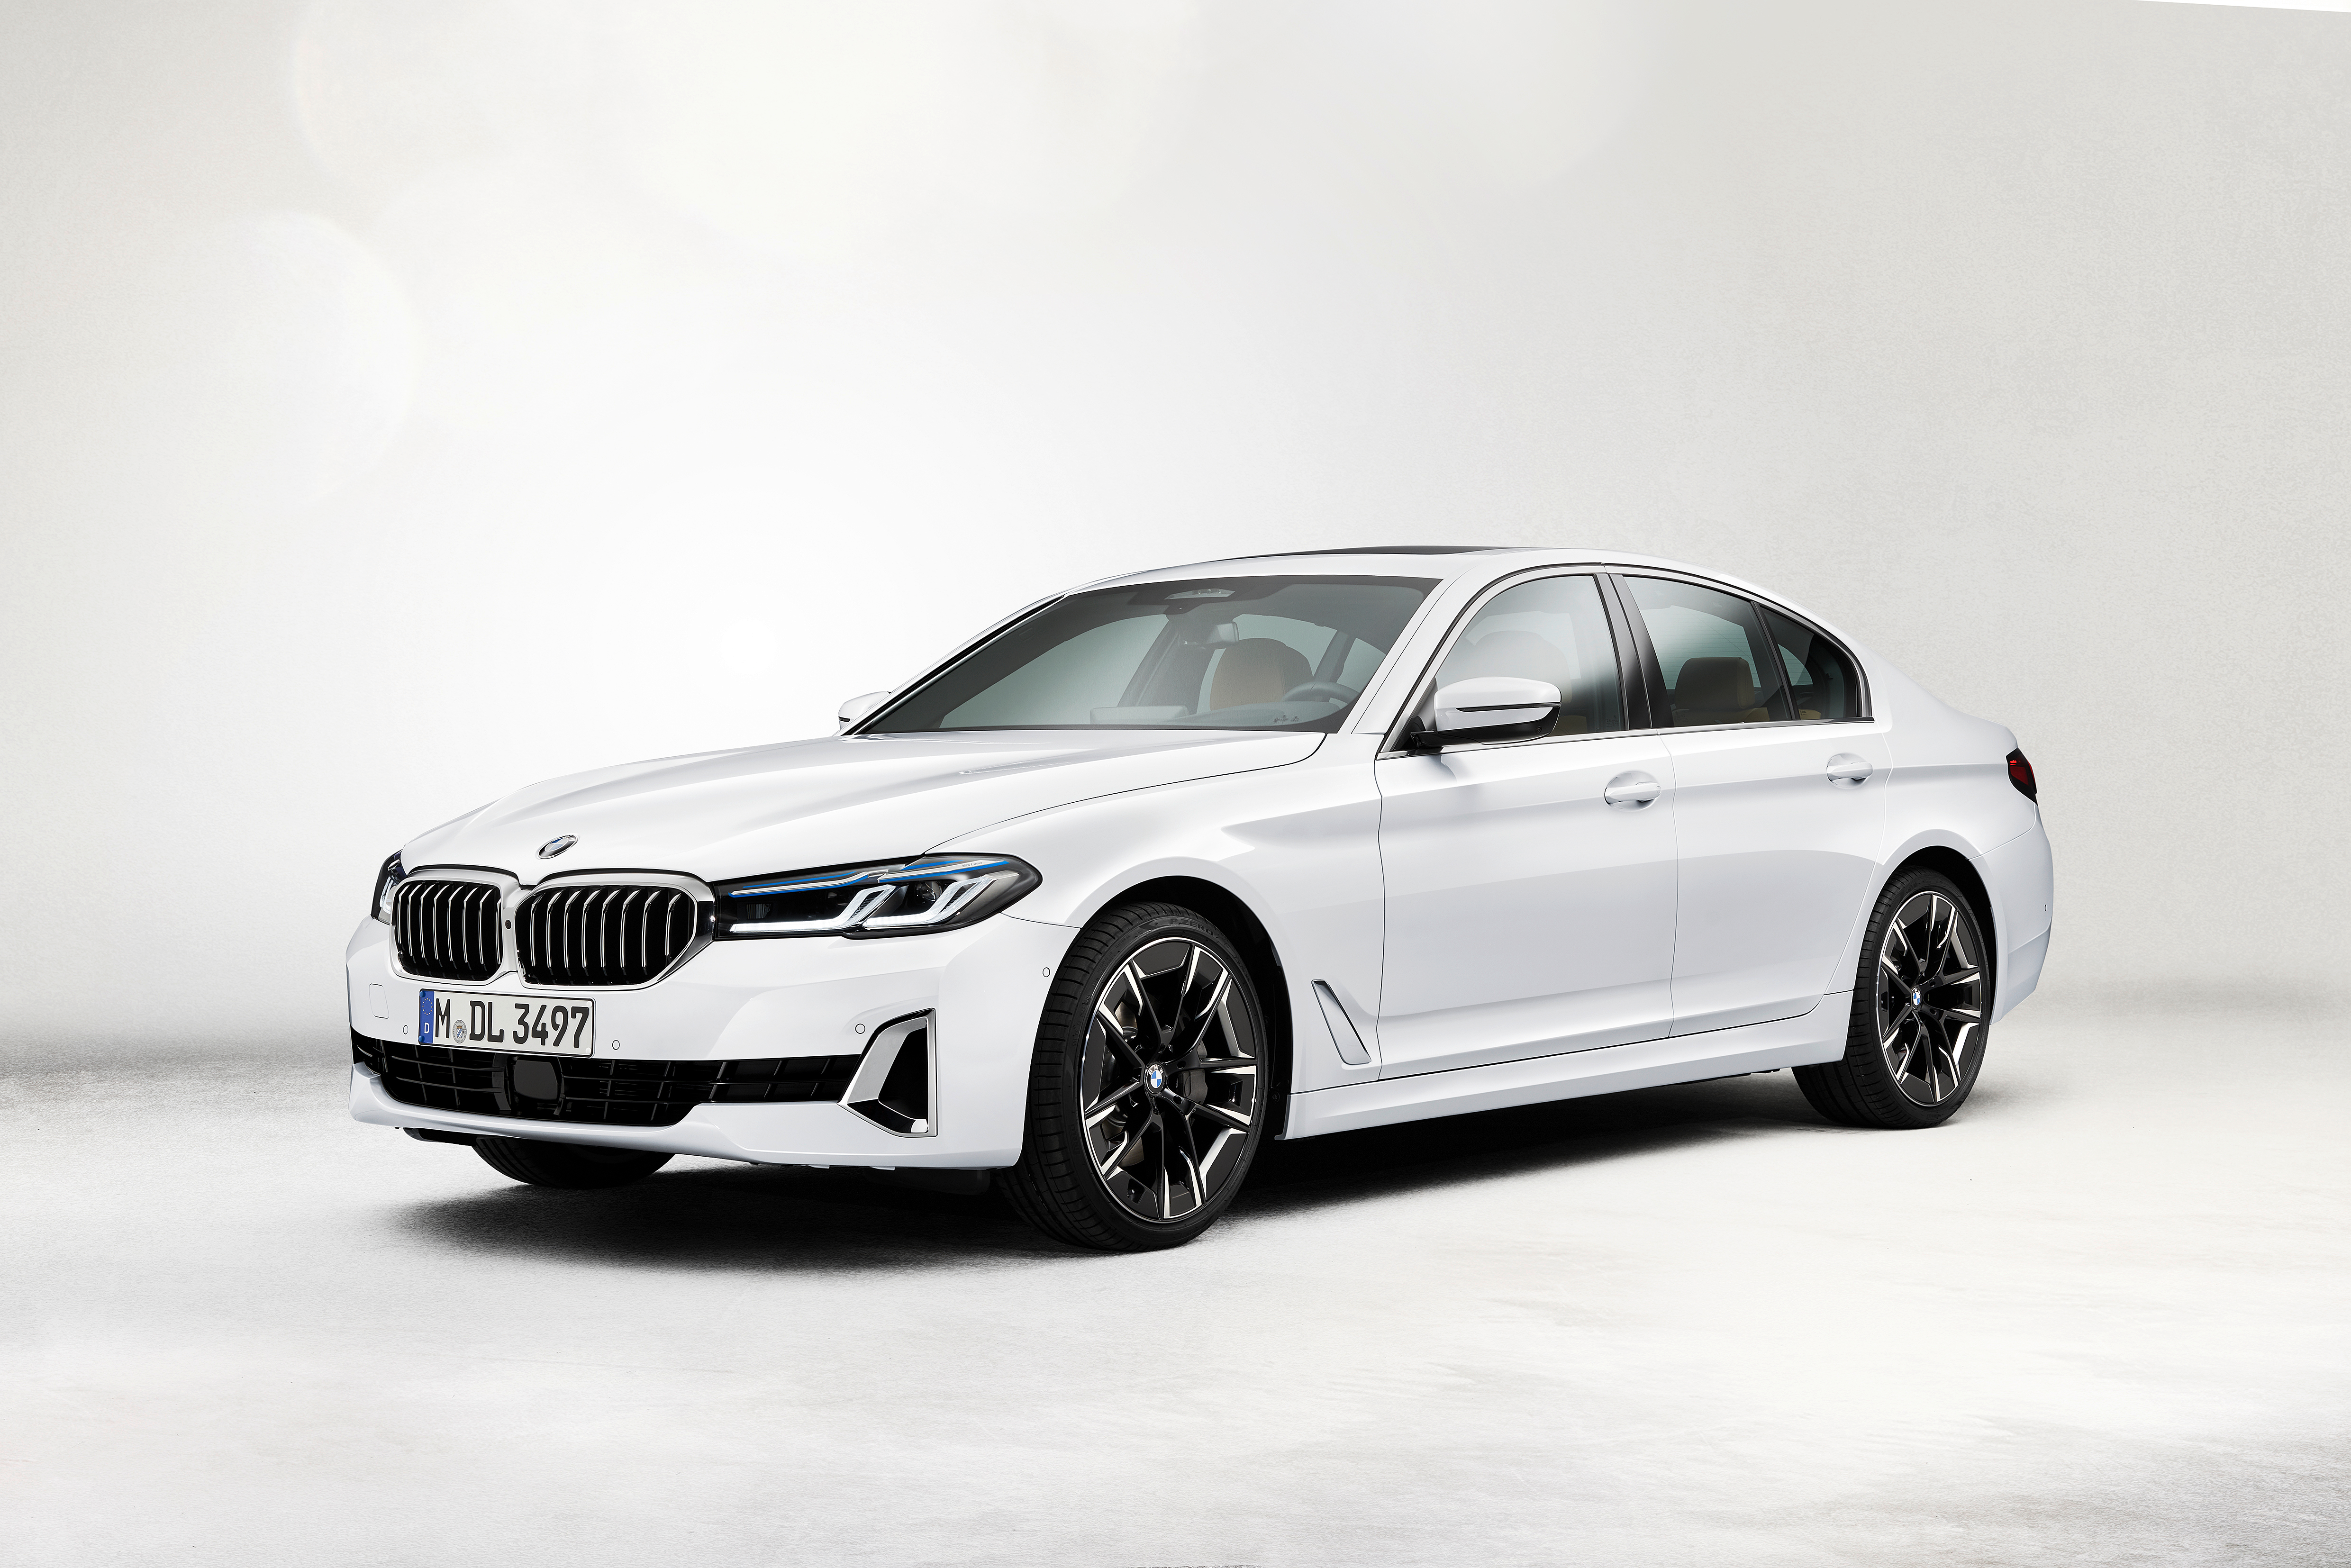 They used to call the 5 Series The World's Best Car in the Nineties and It's still not far off